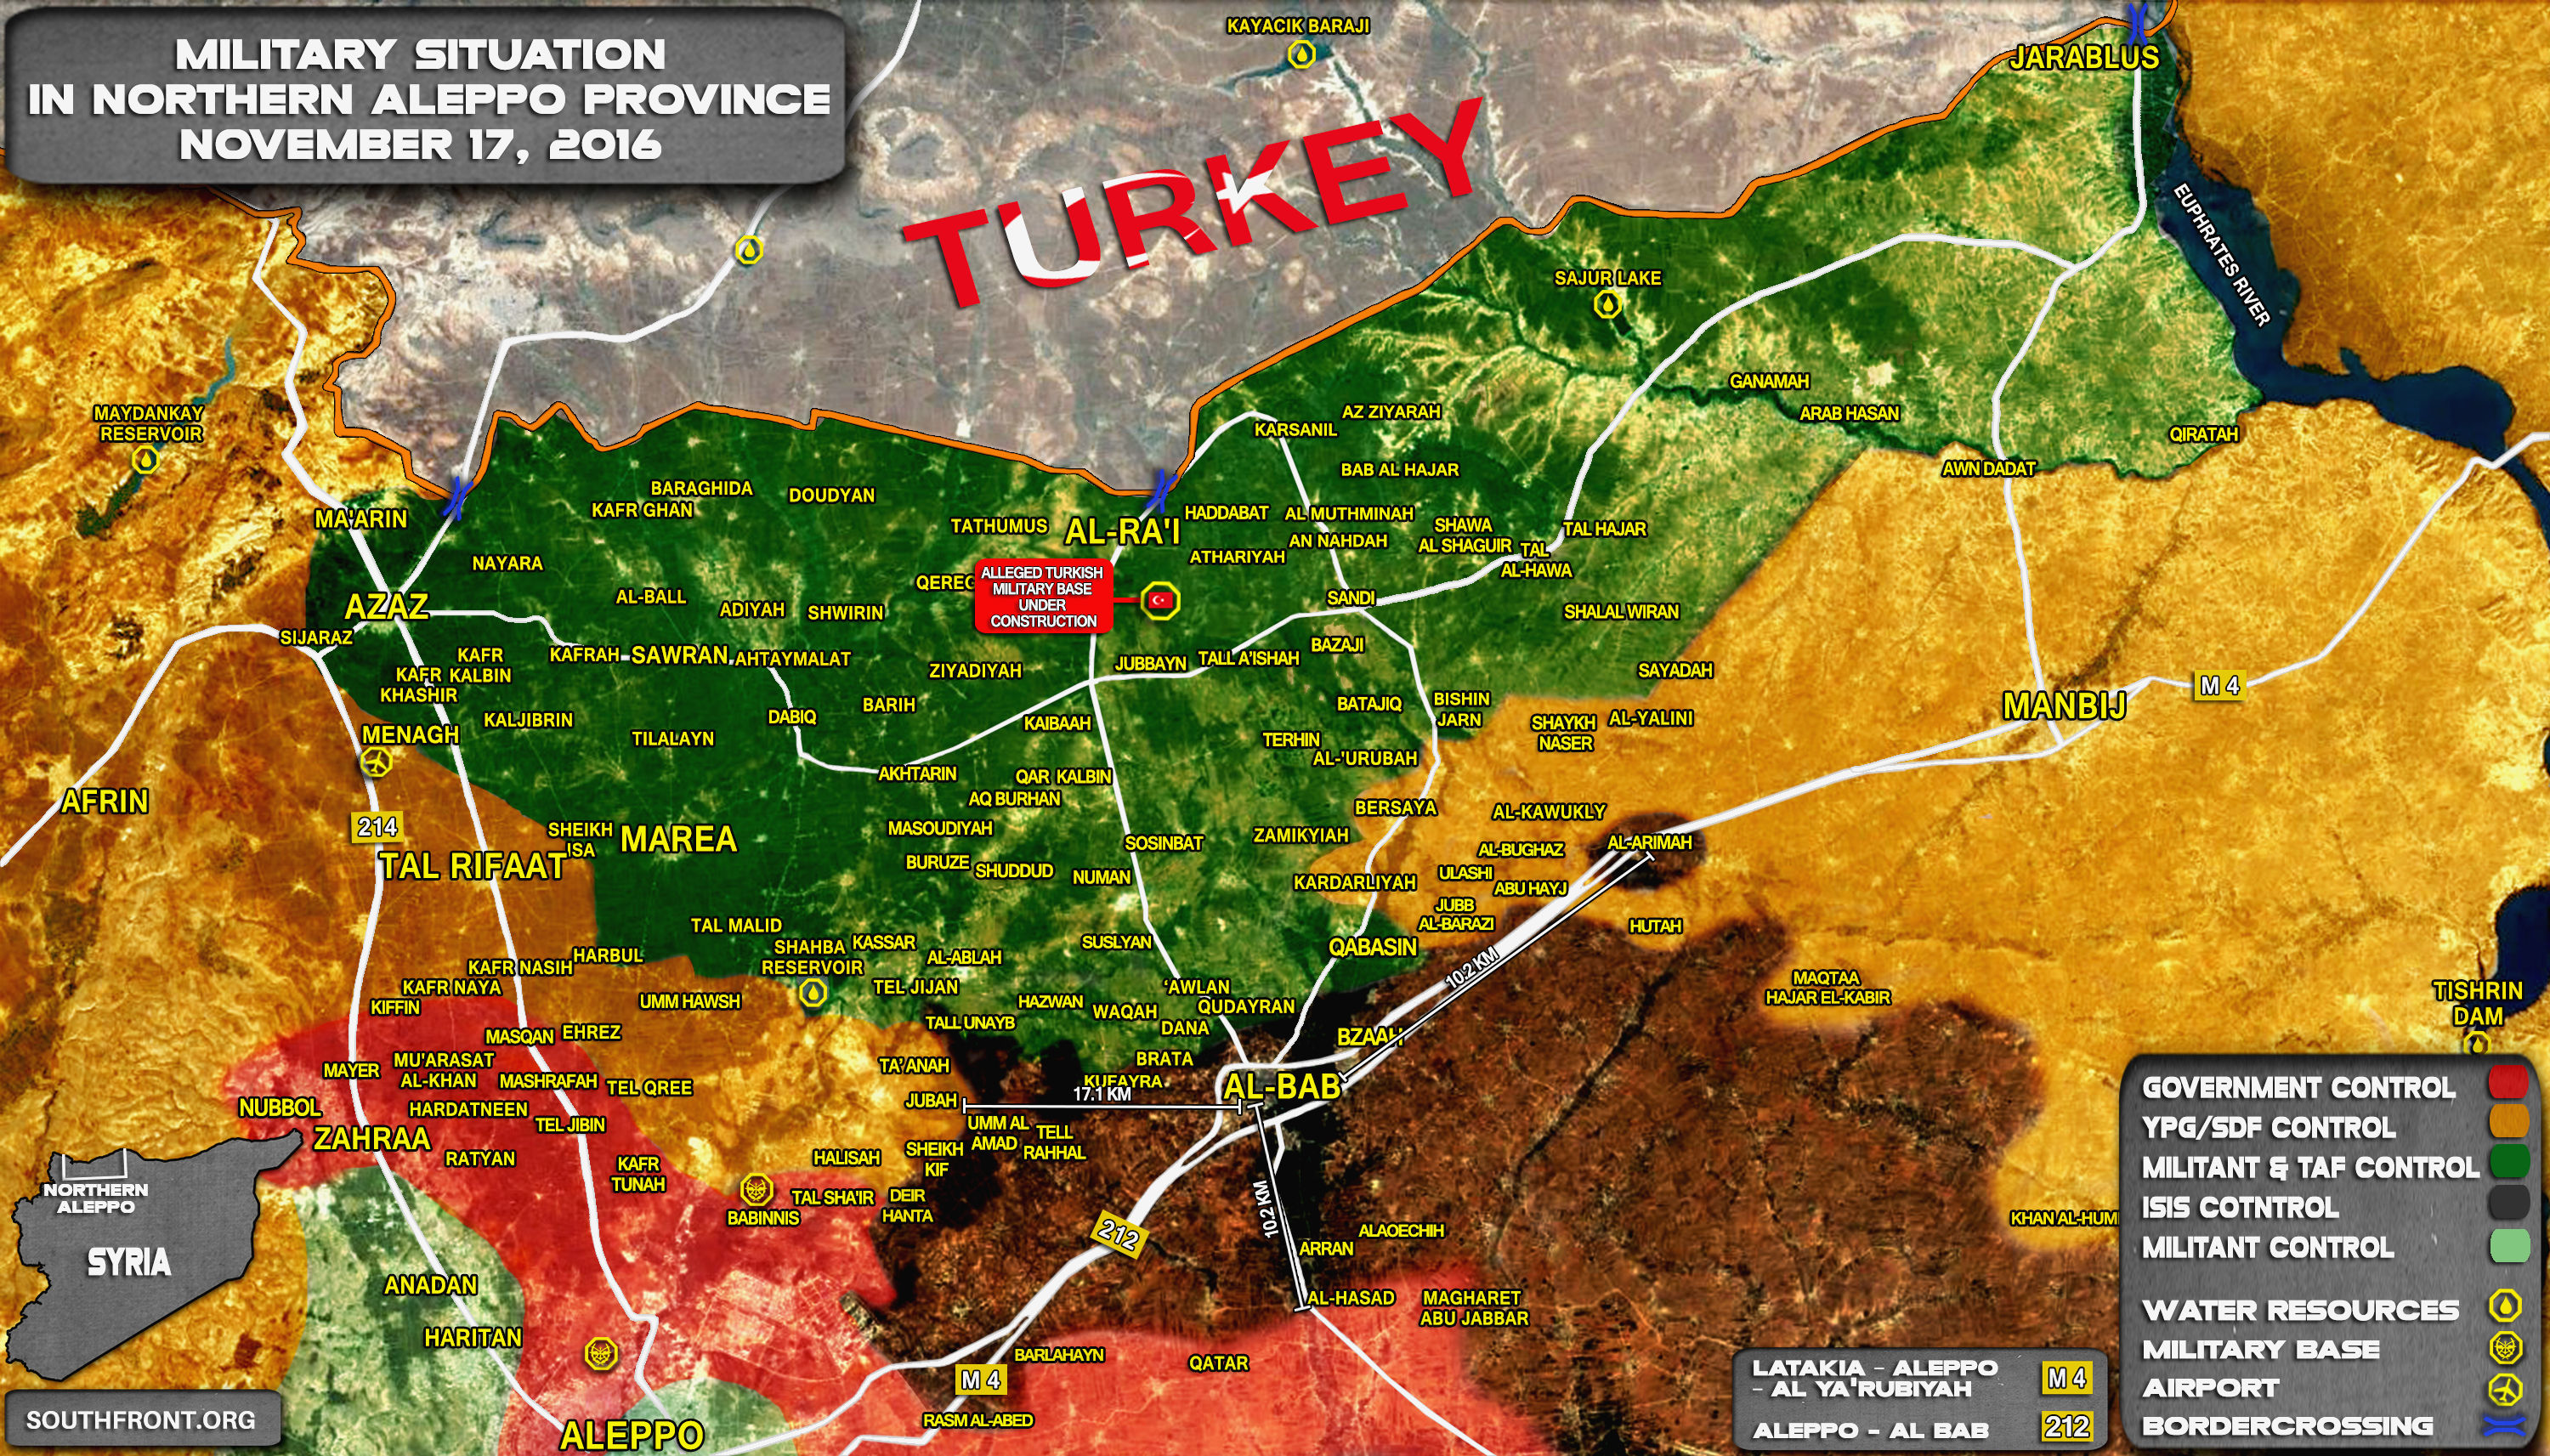 Turkey-led Forces and Kurdish YPG Move Closer to Confrontation over al-Bab